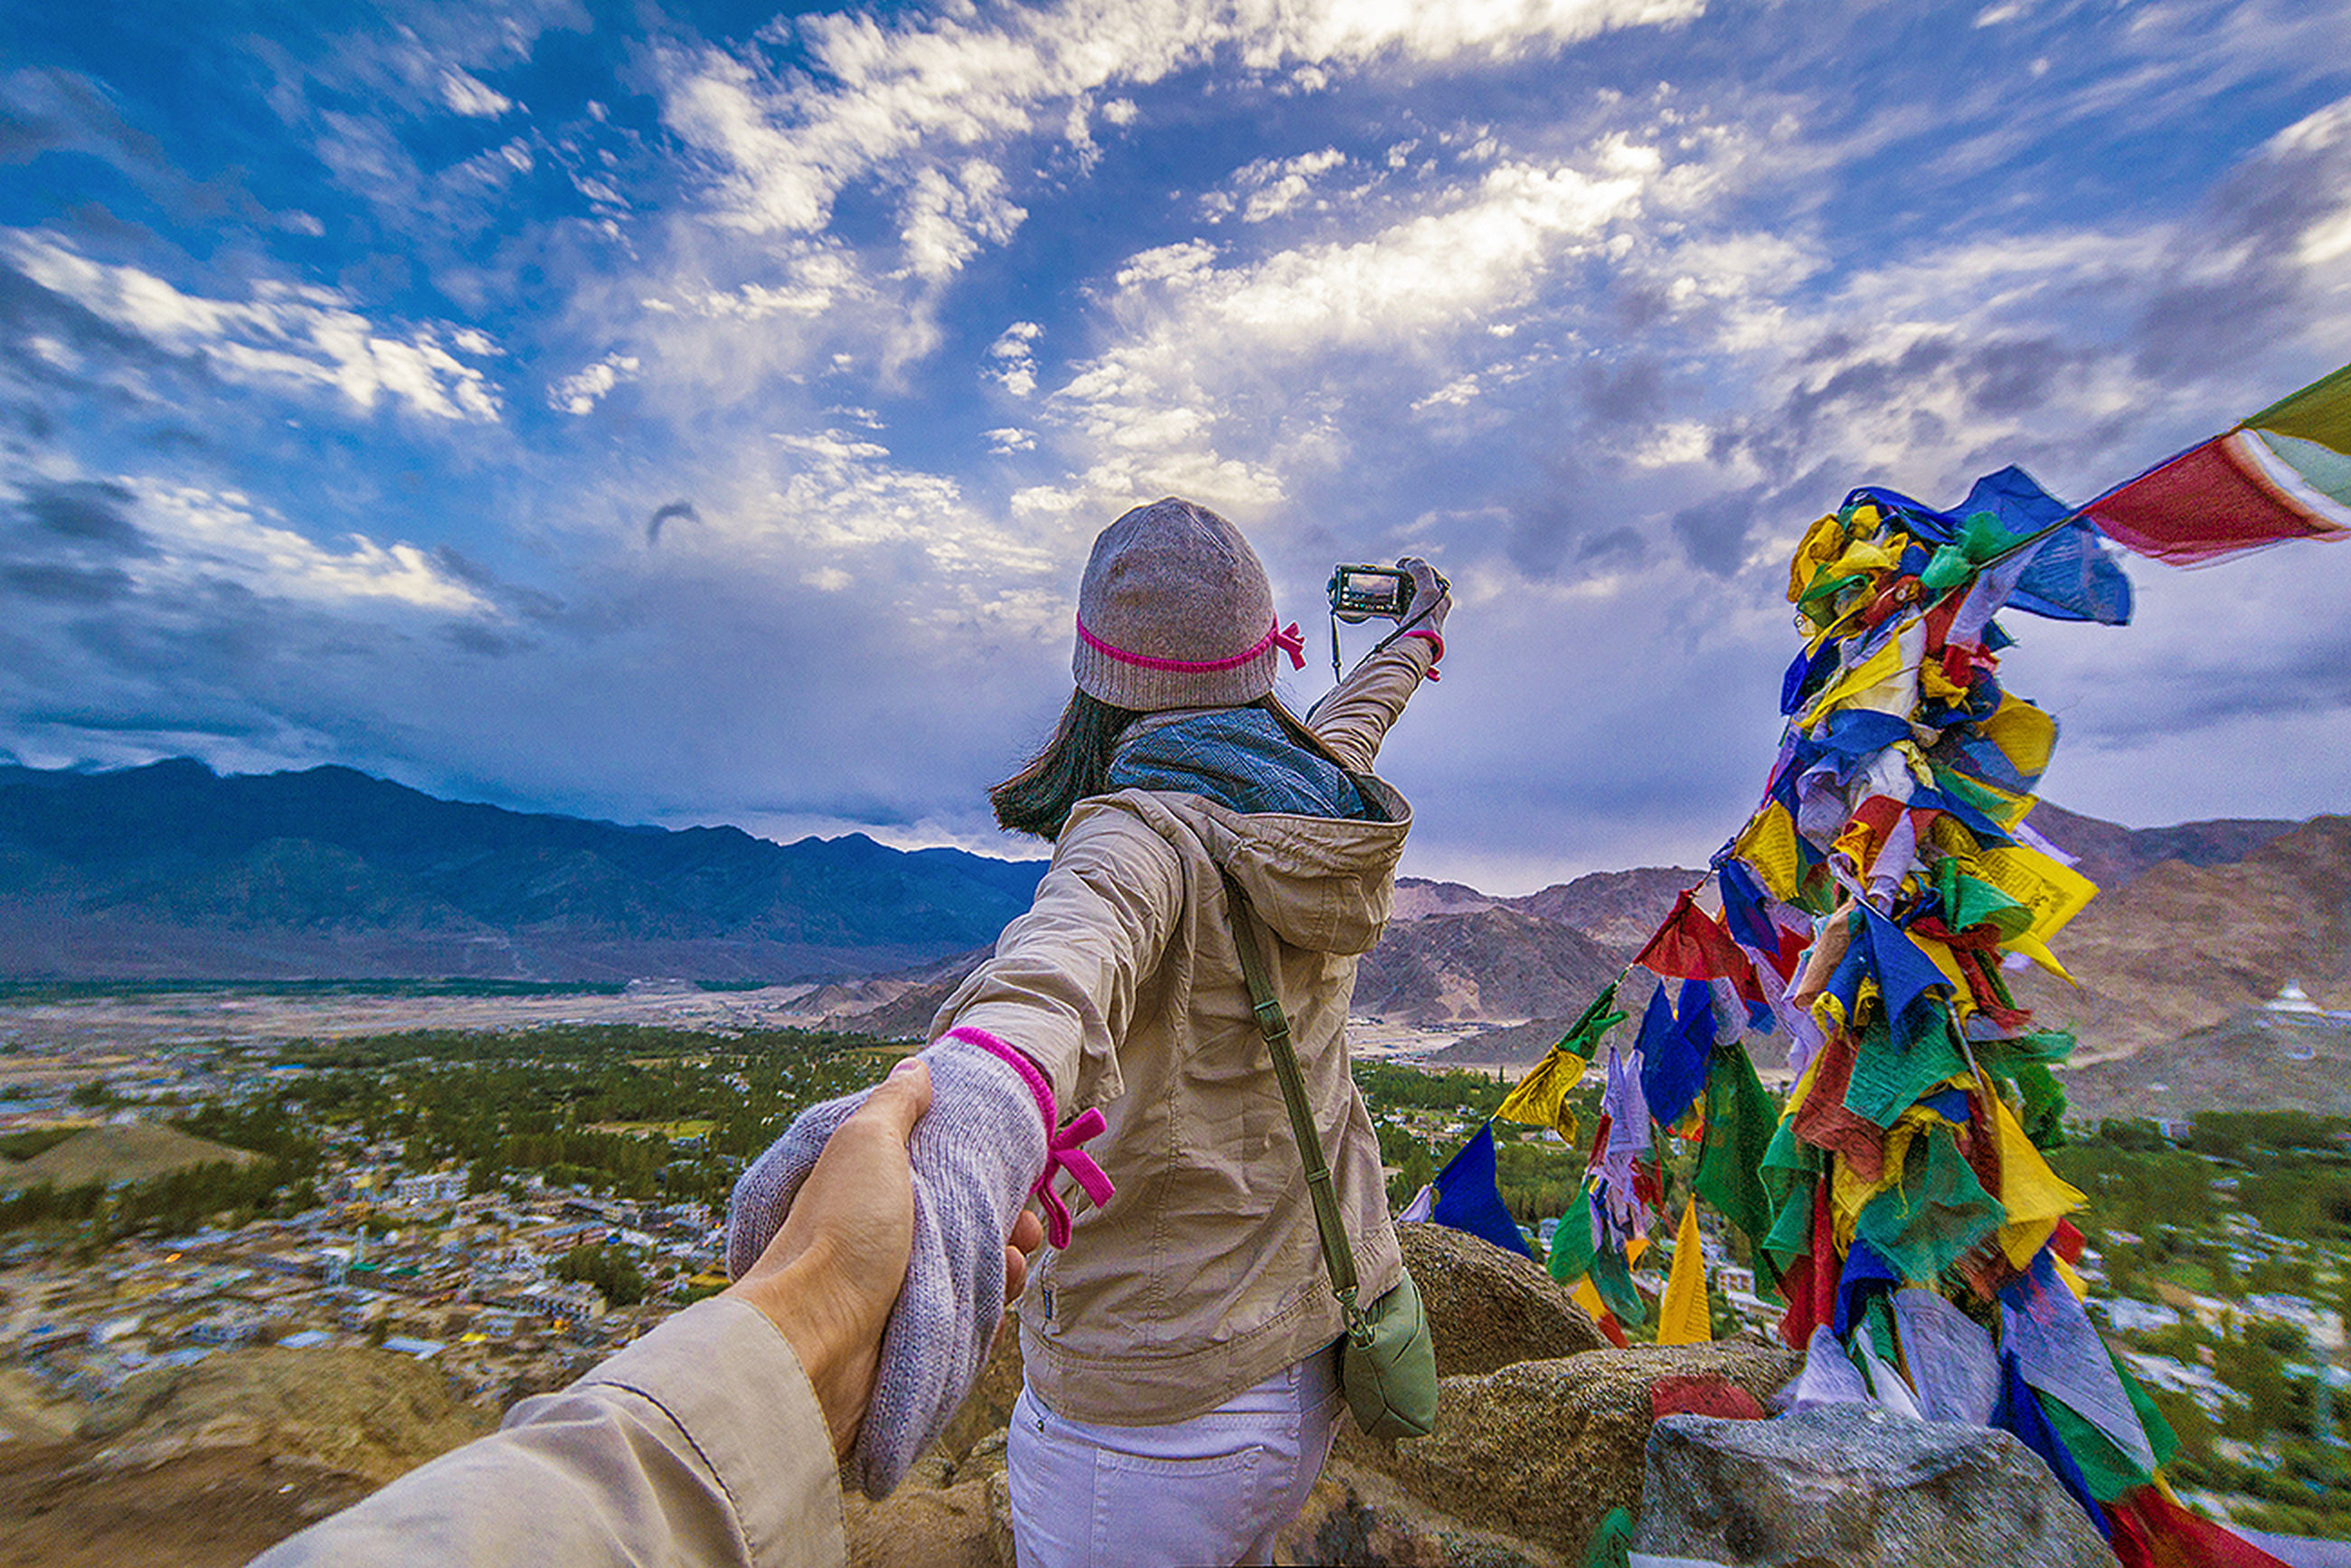 sky, lifestyles, cloud - sky, leisure activity, standing, casual clothing, full length, mountain, three quarter length, rear view, cloud, cloudy, young adult, men, outdoors, day, young women, person